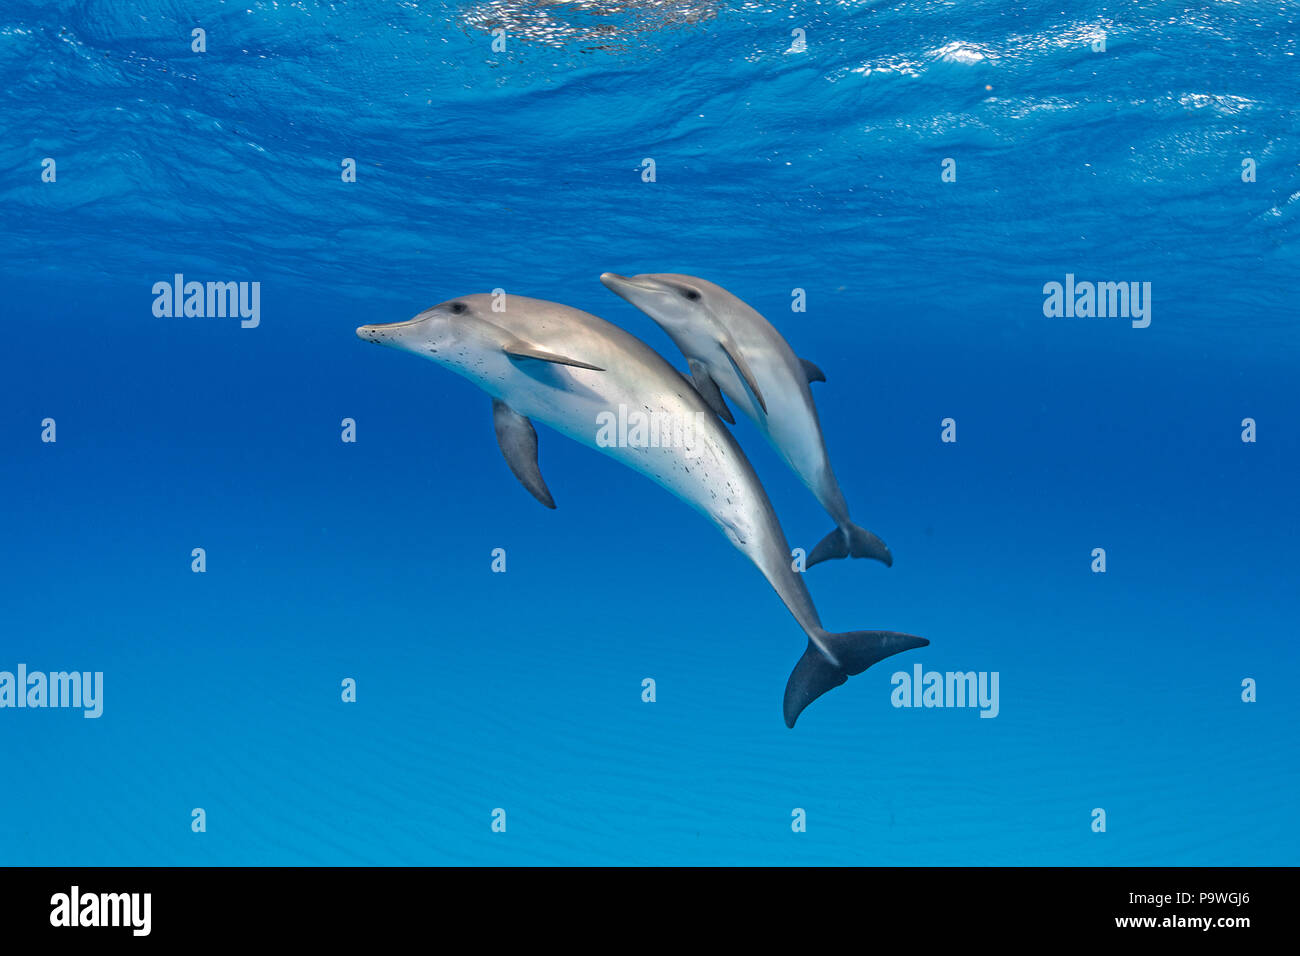 Atlantic spotted dolphin (Stenella frontalis) with young animal, Bahama Banks, Bahamas - Stock Image